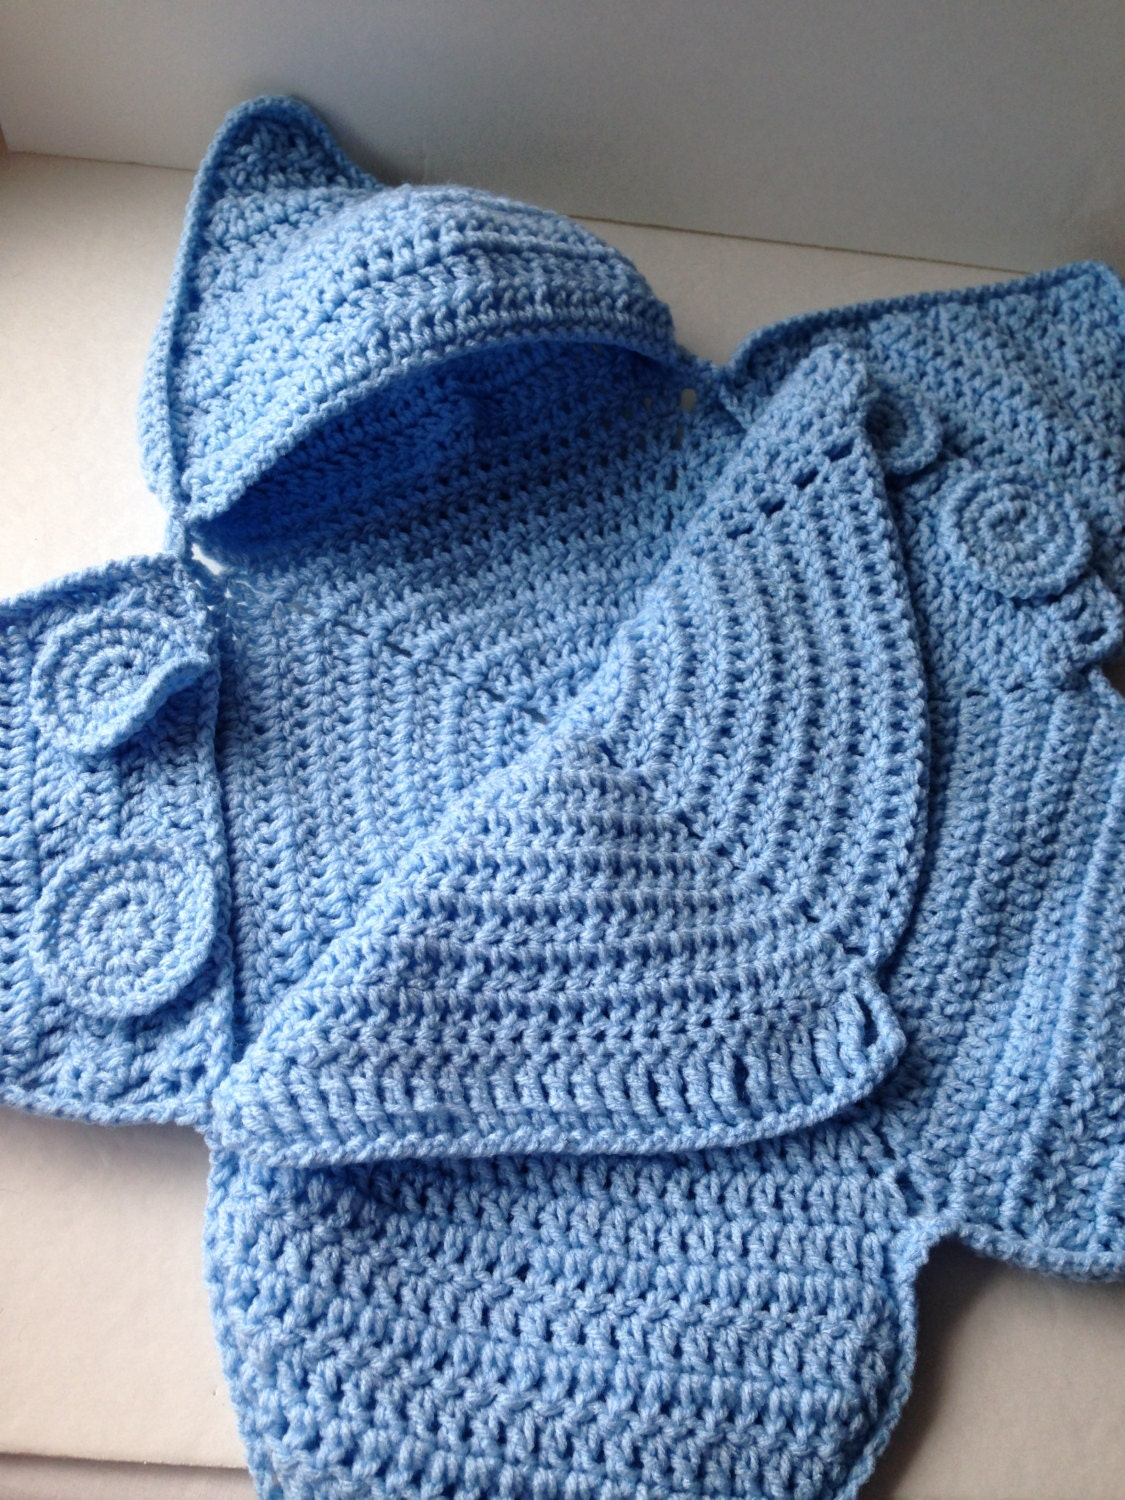 Crochet Baby Bunting Patterns Free : Blue Baby Bunting Bag Blue Star Bunting Handmade Crochet